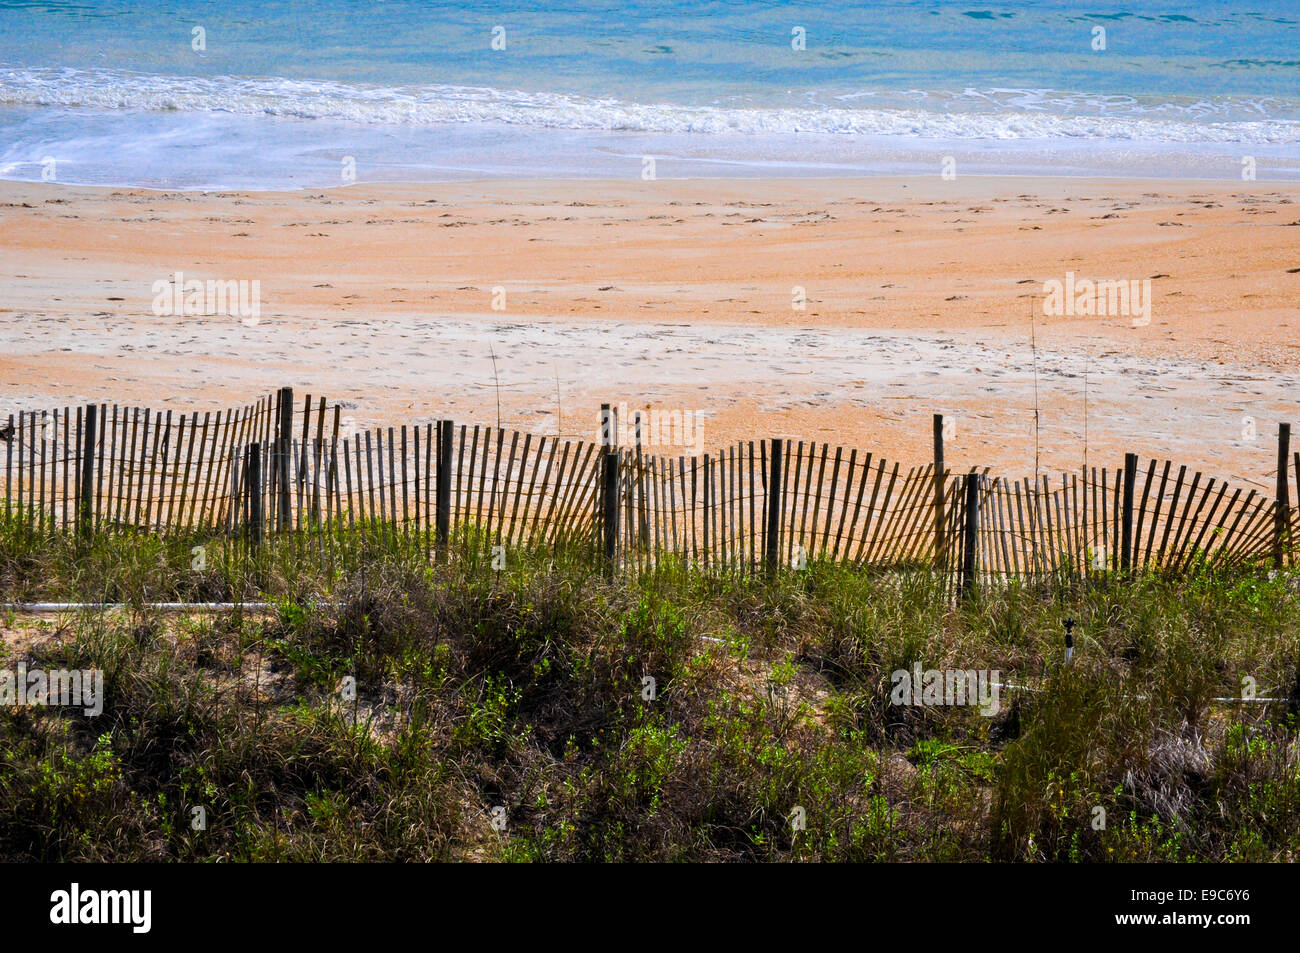 beach with erosion fence Jacksonville Florida - Stock Image